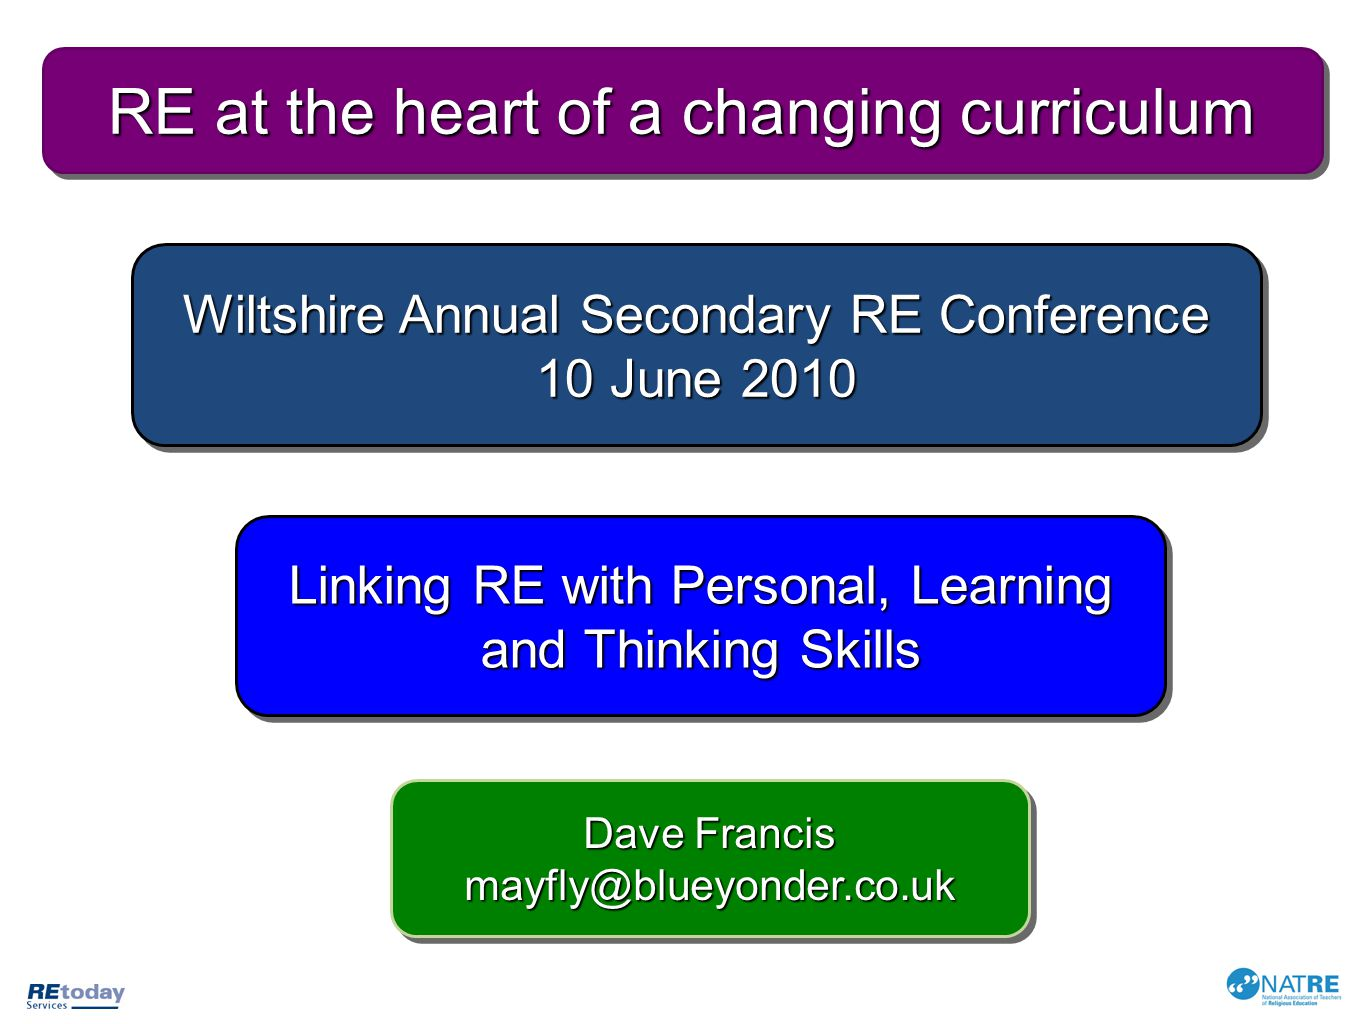 RE at the heart of a changing curriculum